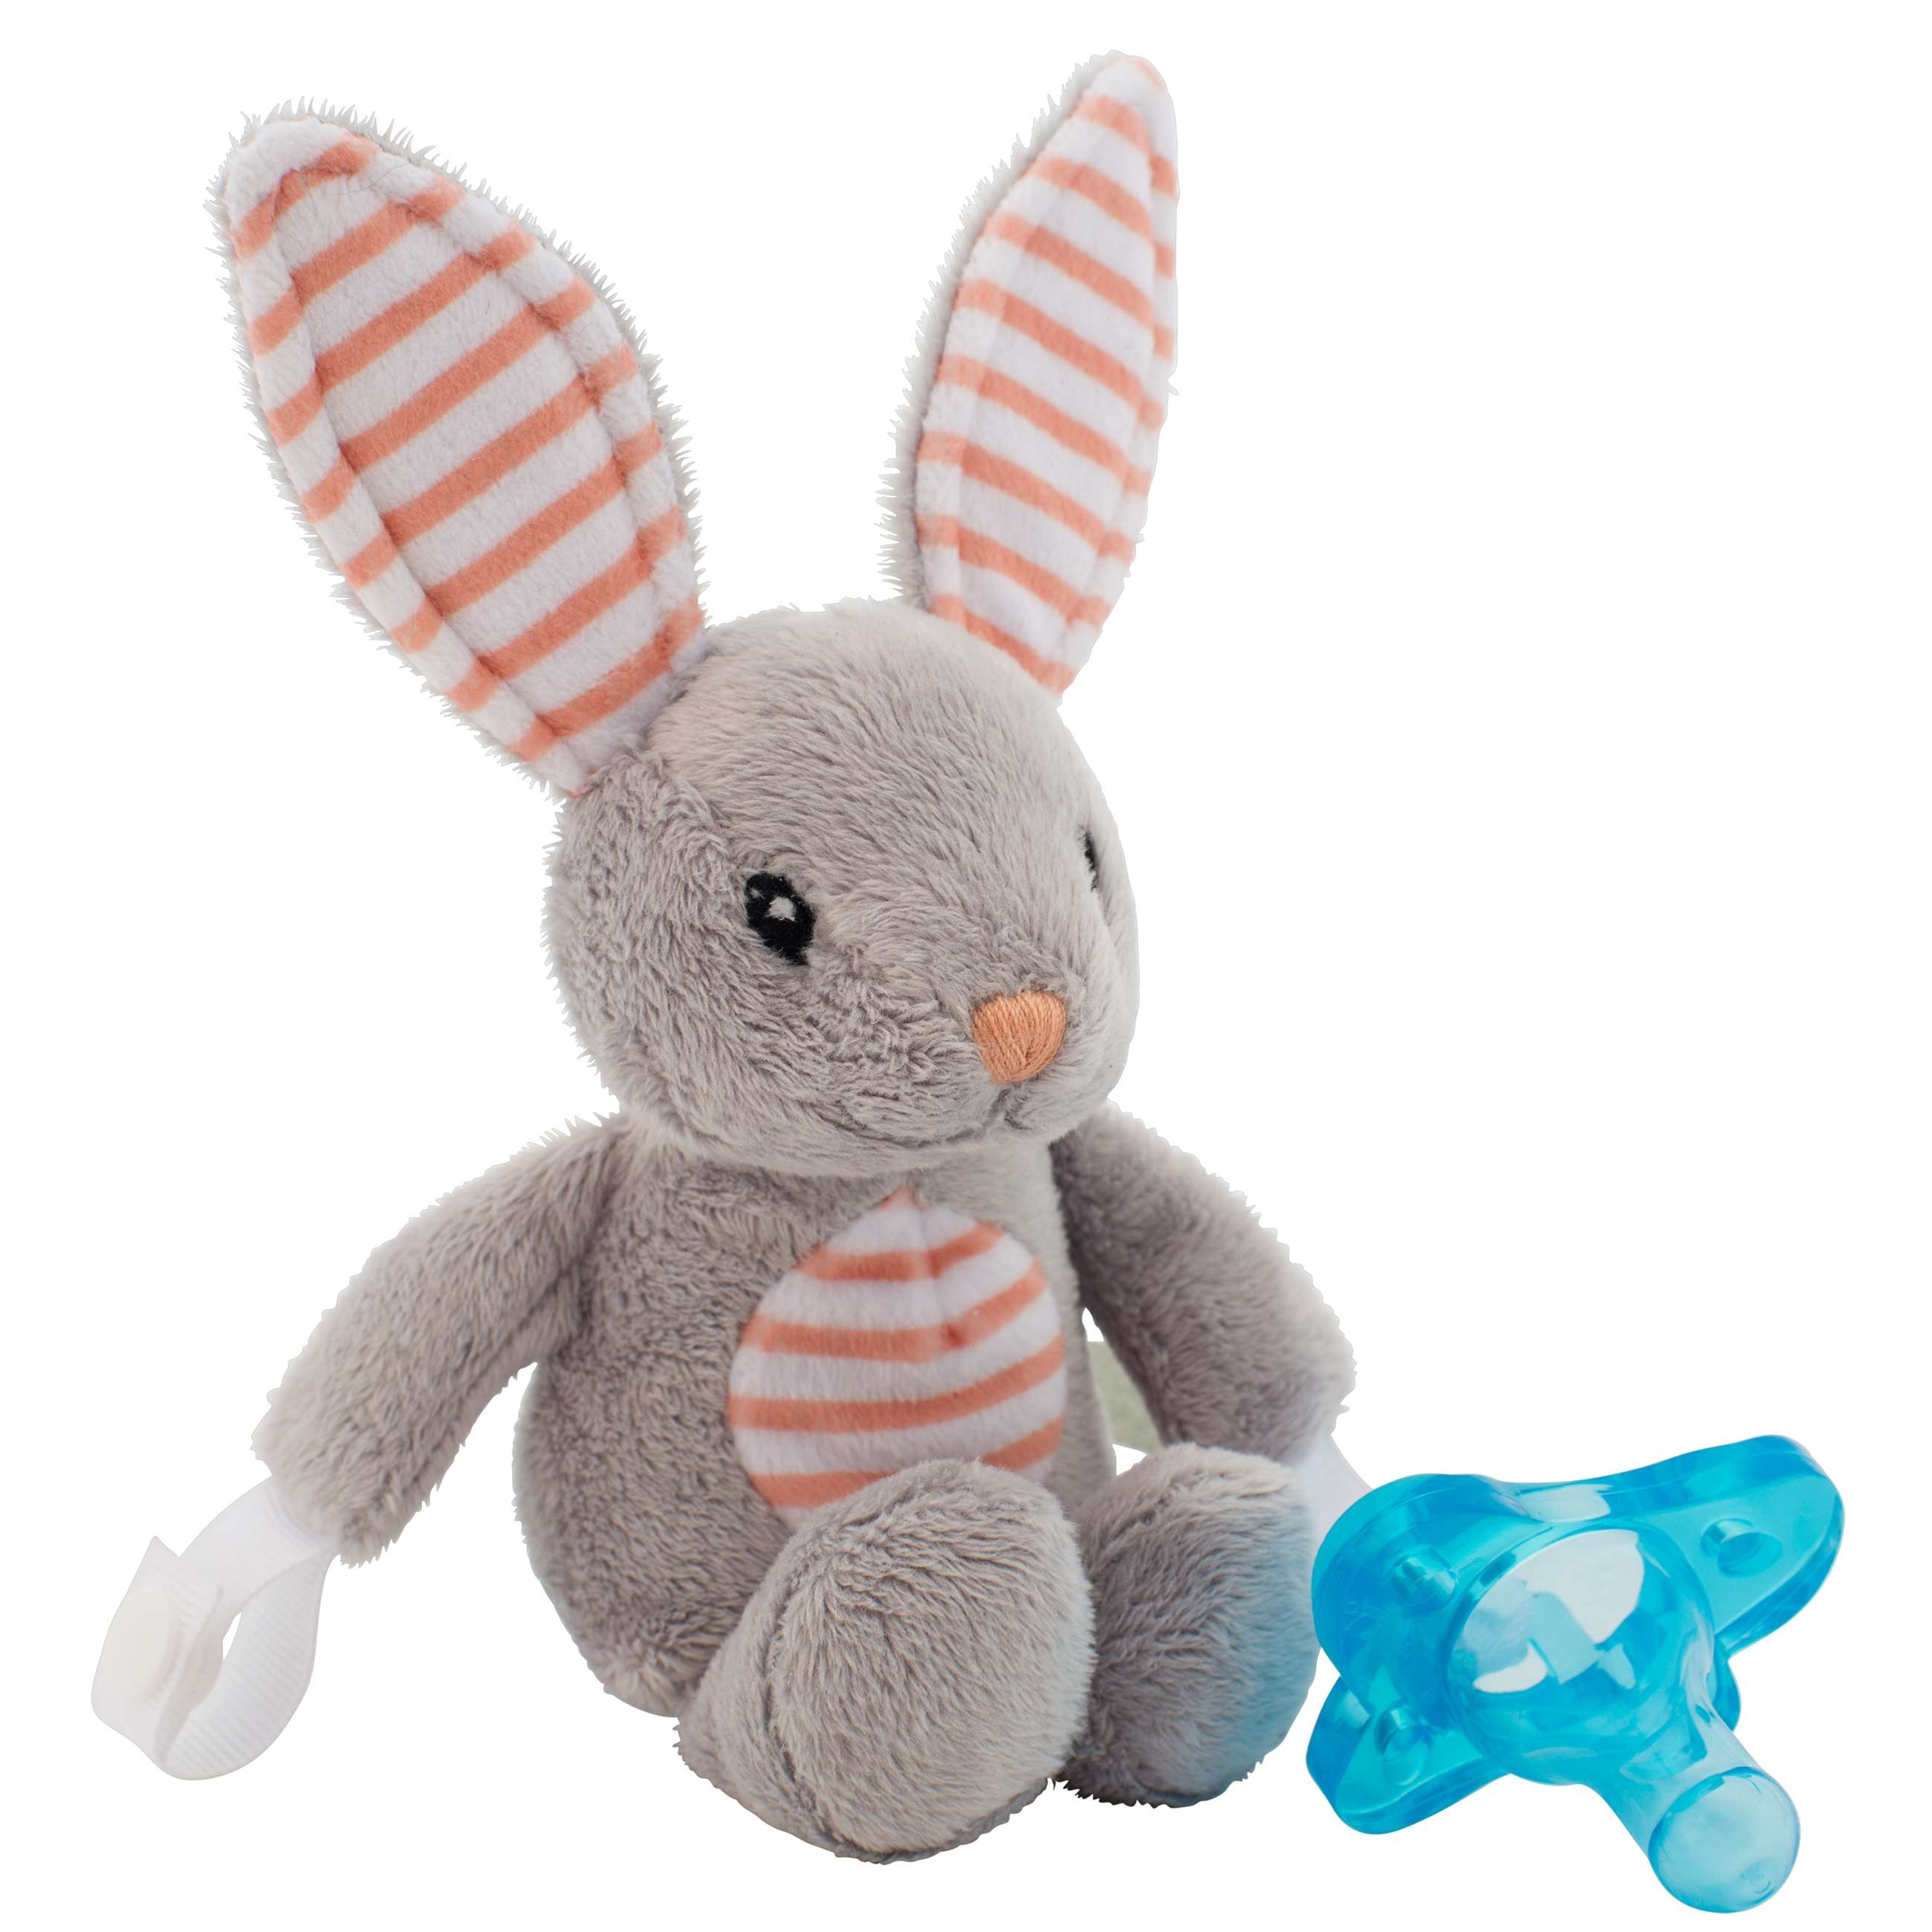 9302 - drbrown lovey - billy the bunny - blå napp _ac099_prod